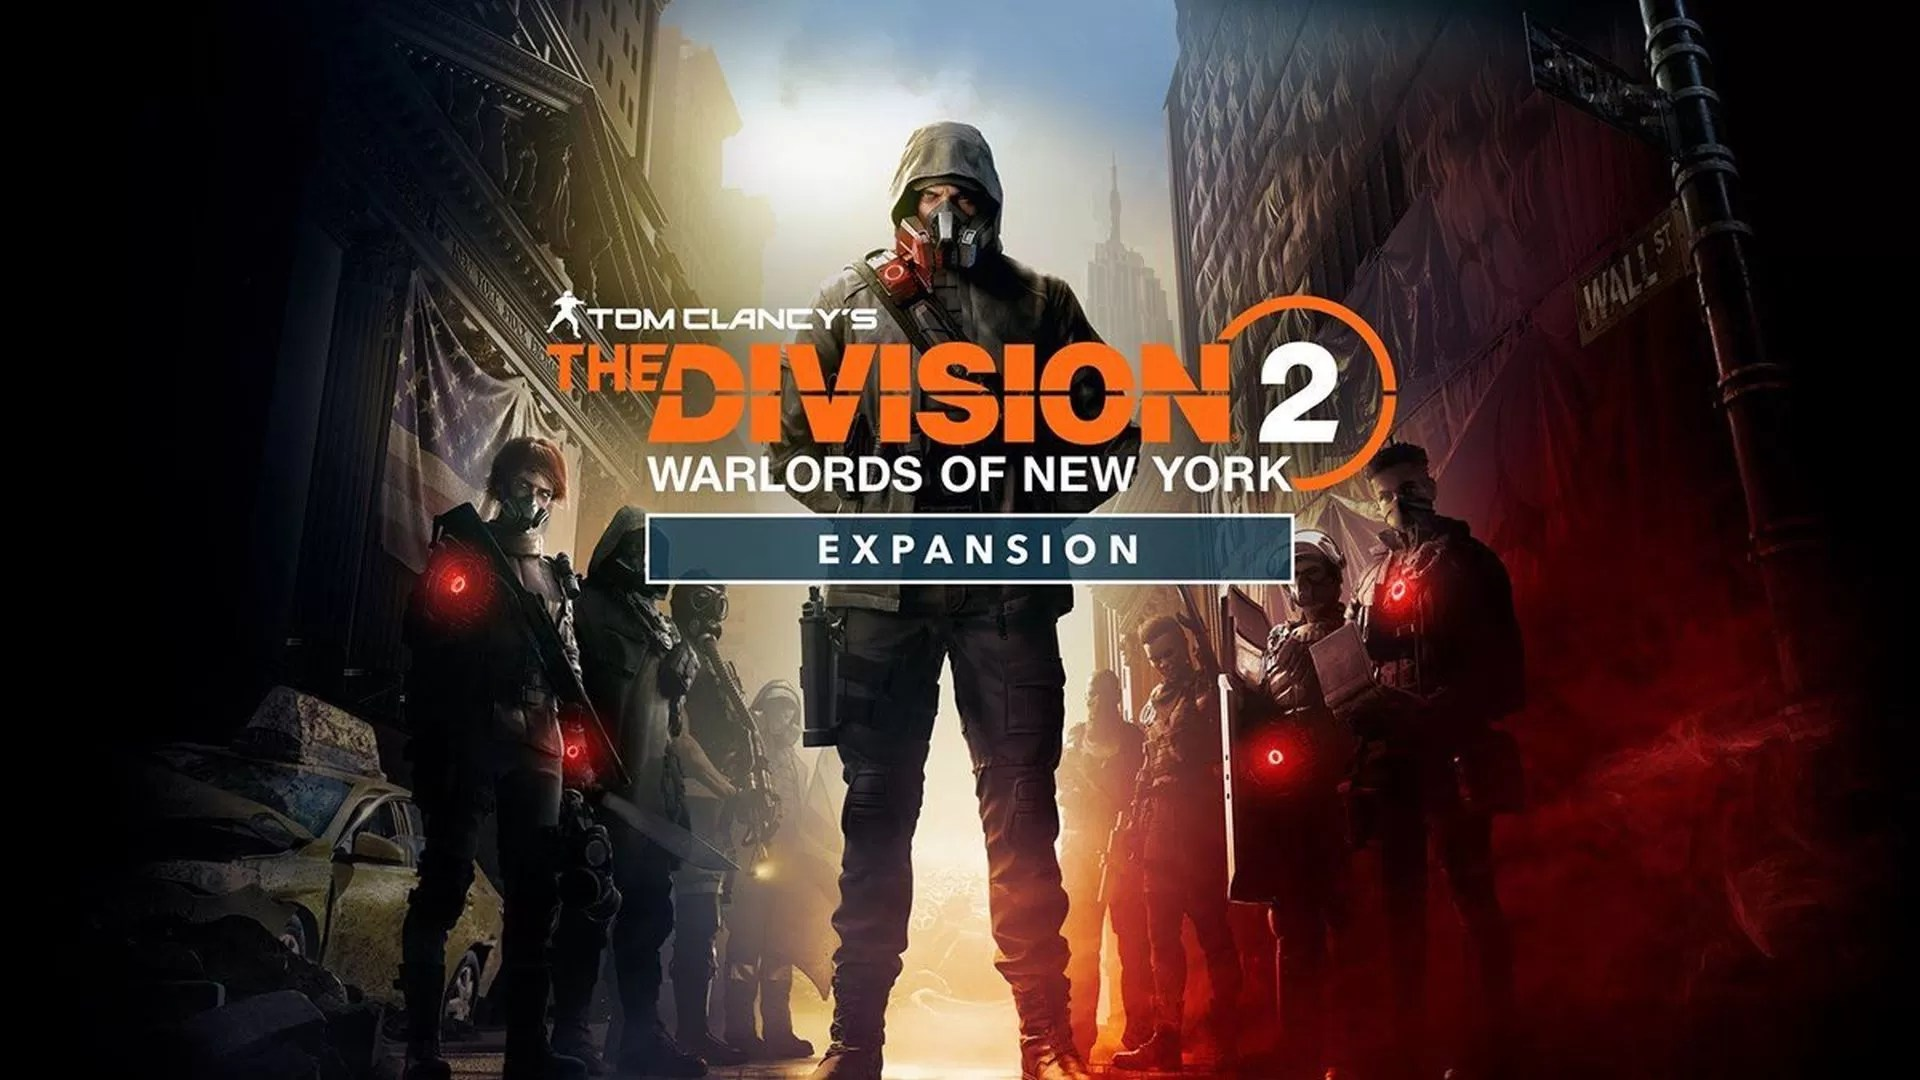 The Division 2 Is Getting A Major Expansion Warlords Of New York